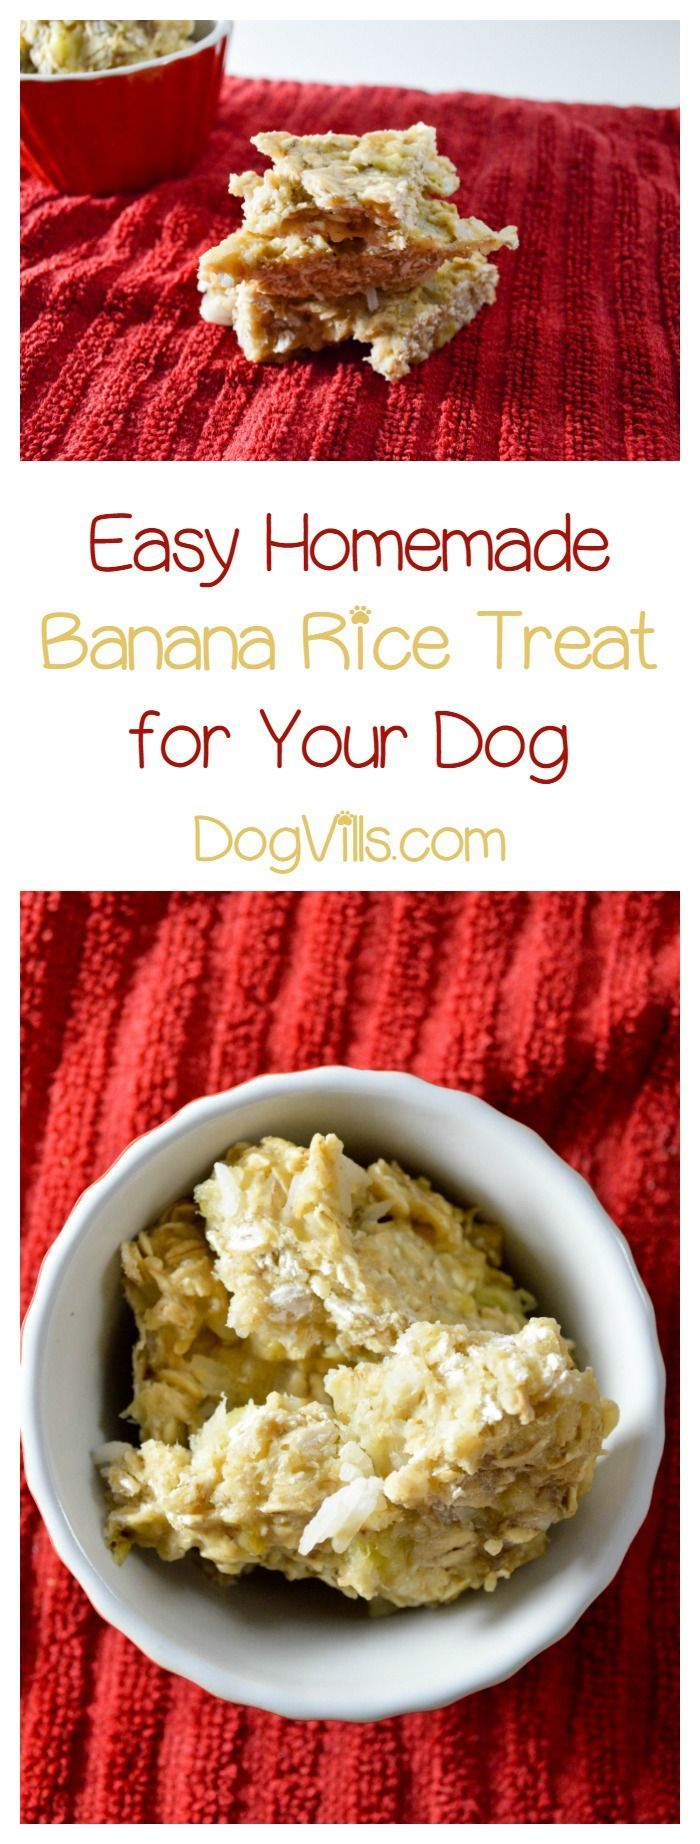 Senior dogs with fewer teeth can still enjoy homemade dog treats! This banana dog treat is soft and tasty, perfect for your older pooch!